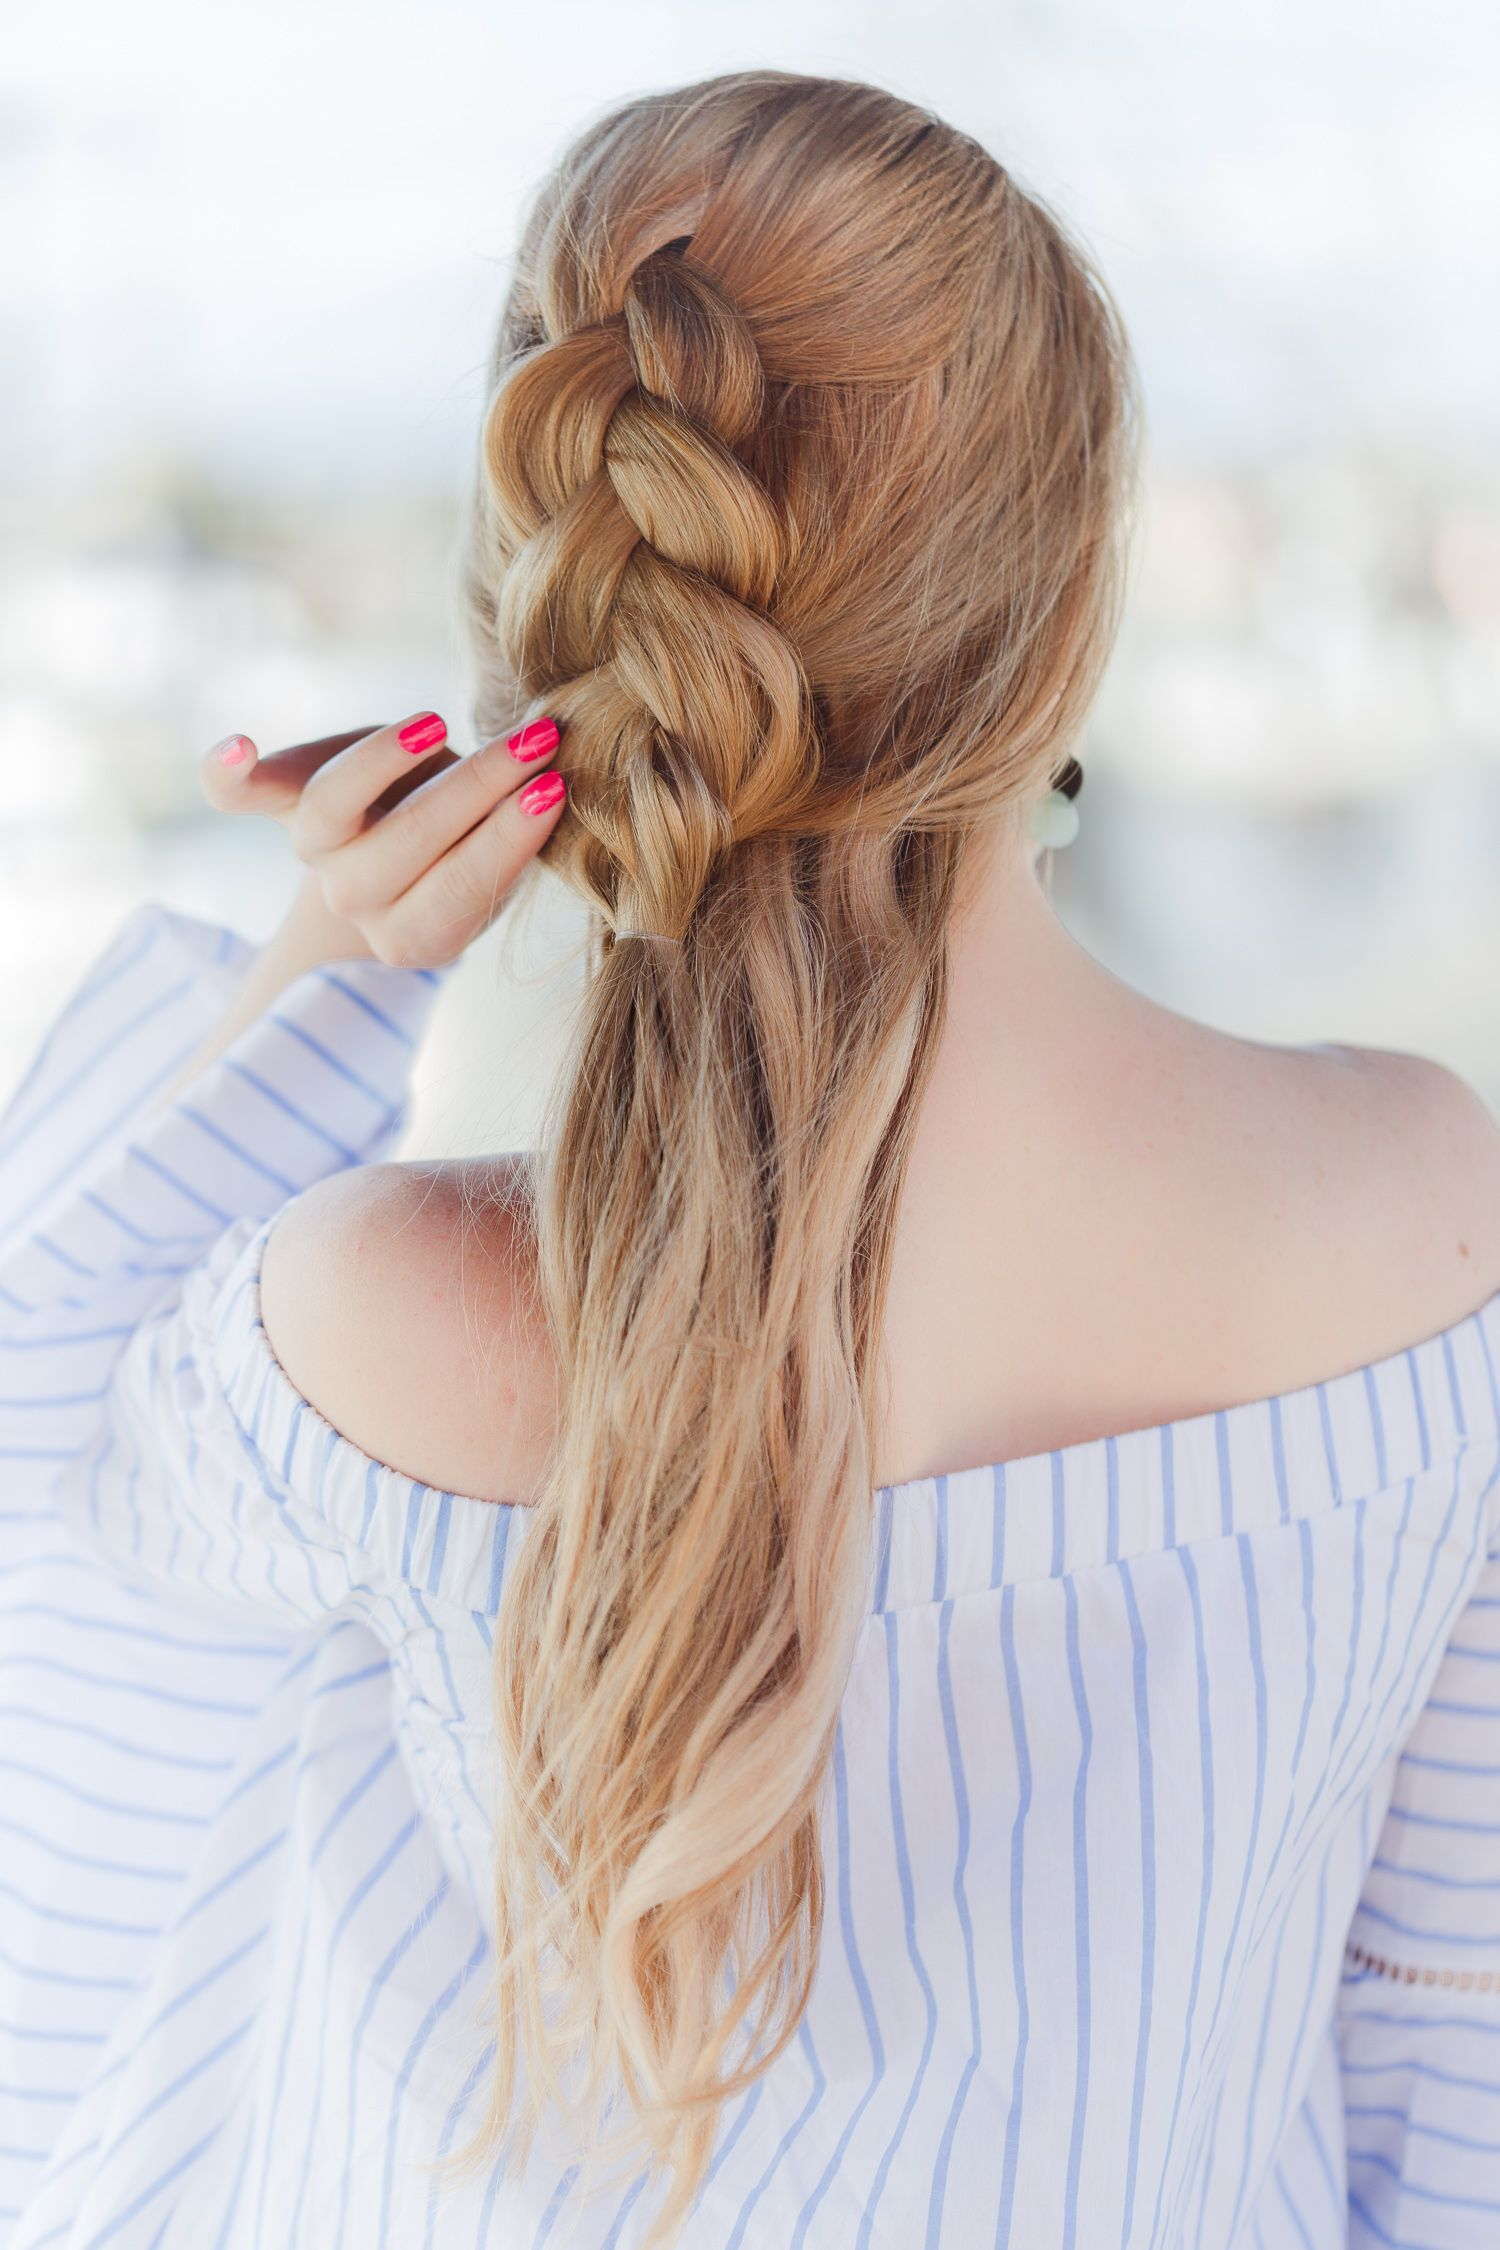 Beach Hairstyles Adorable Half Up Dutch Braid Hairstyle And Beach Walk  Design Every Day